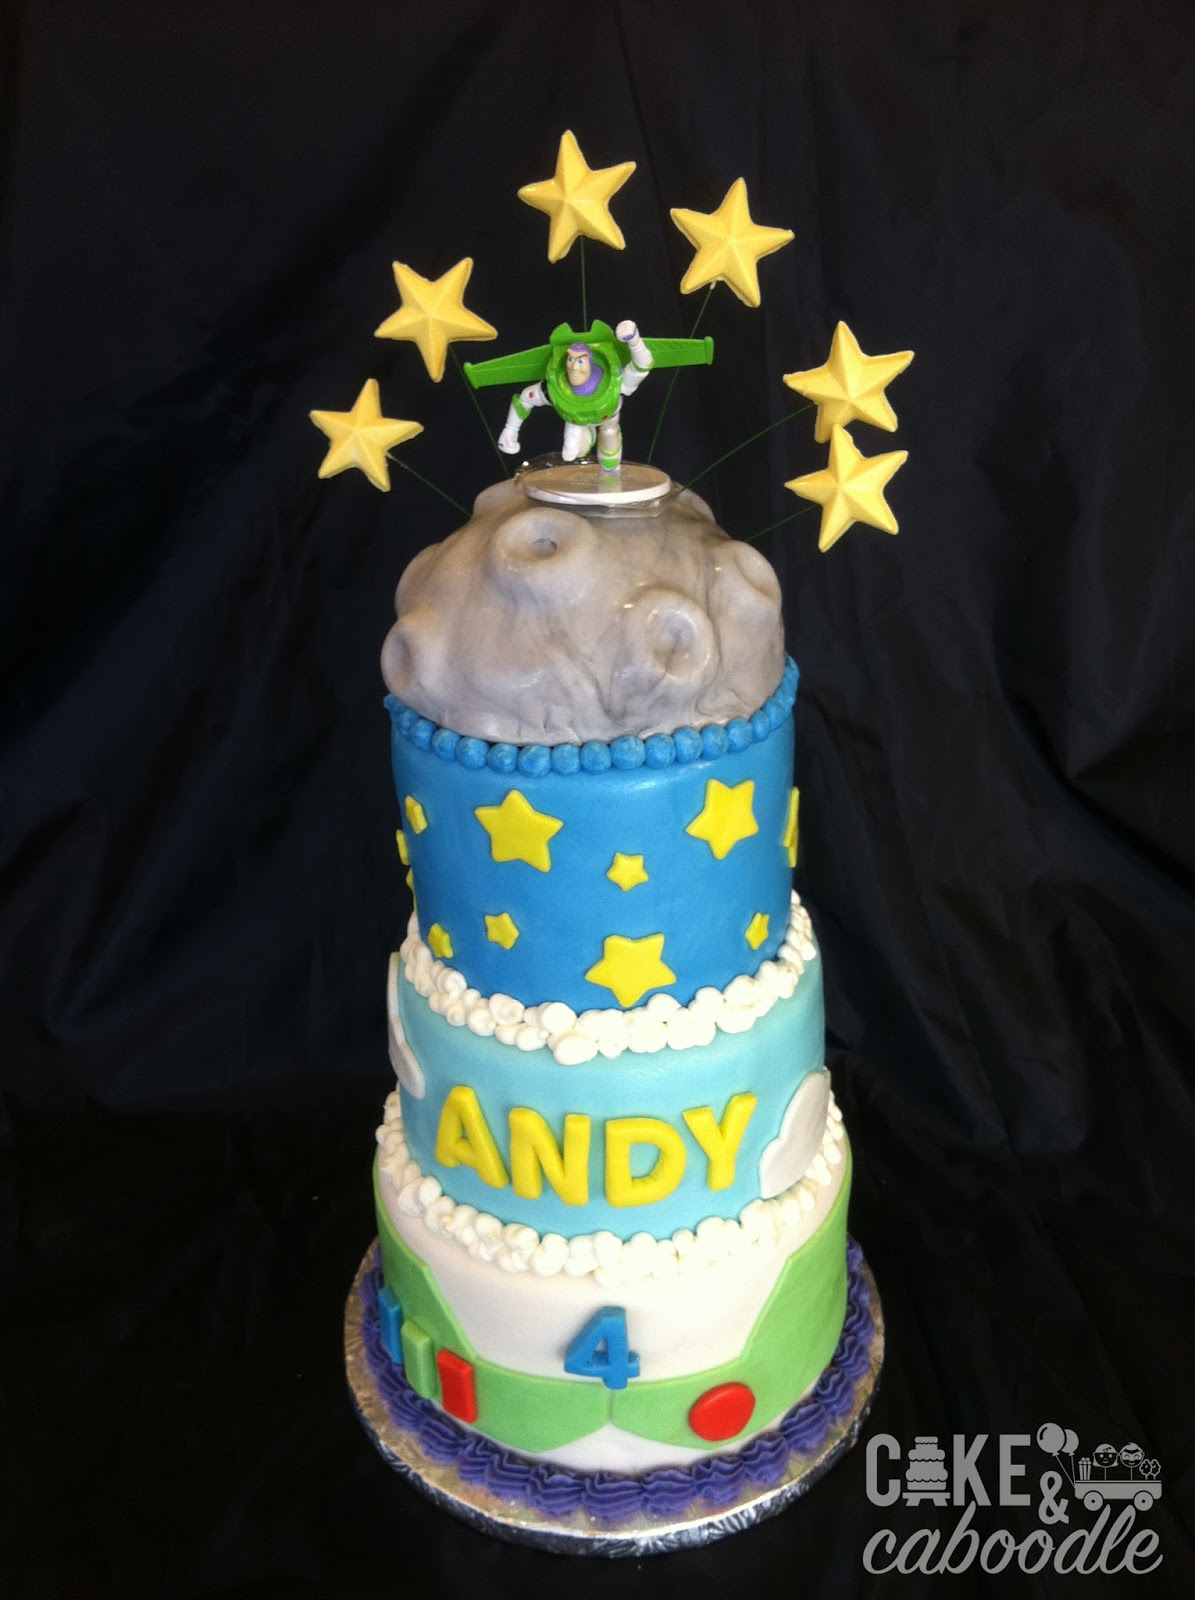 Buzz Lightyear Cake Cake And Caboodle